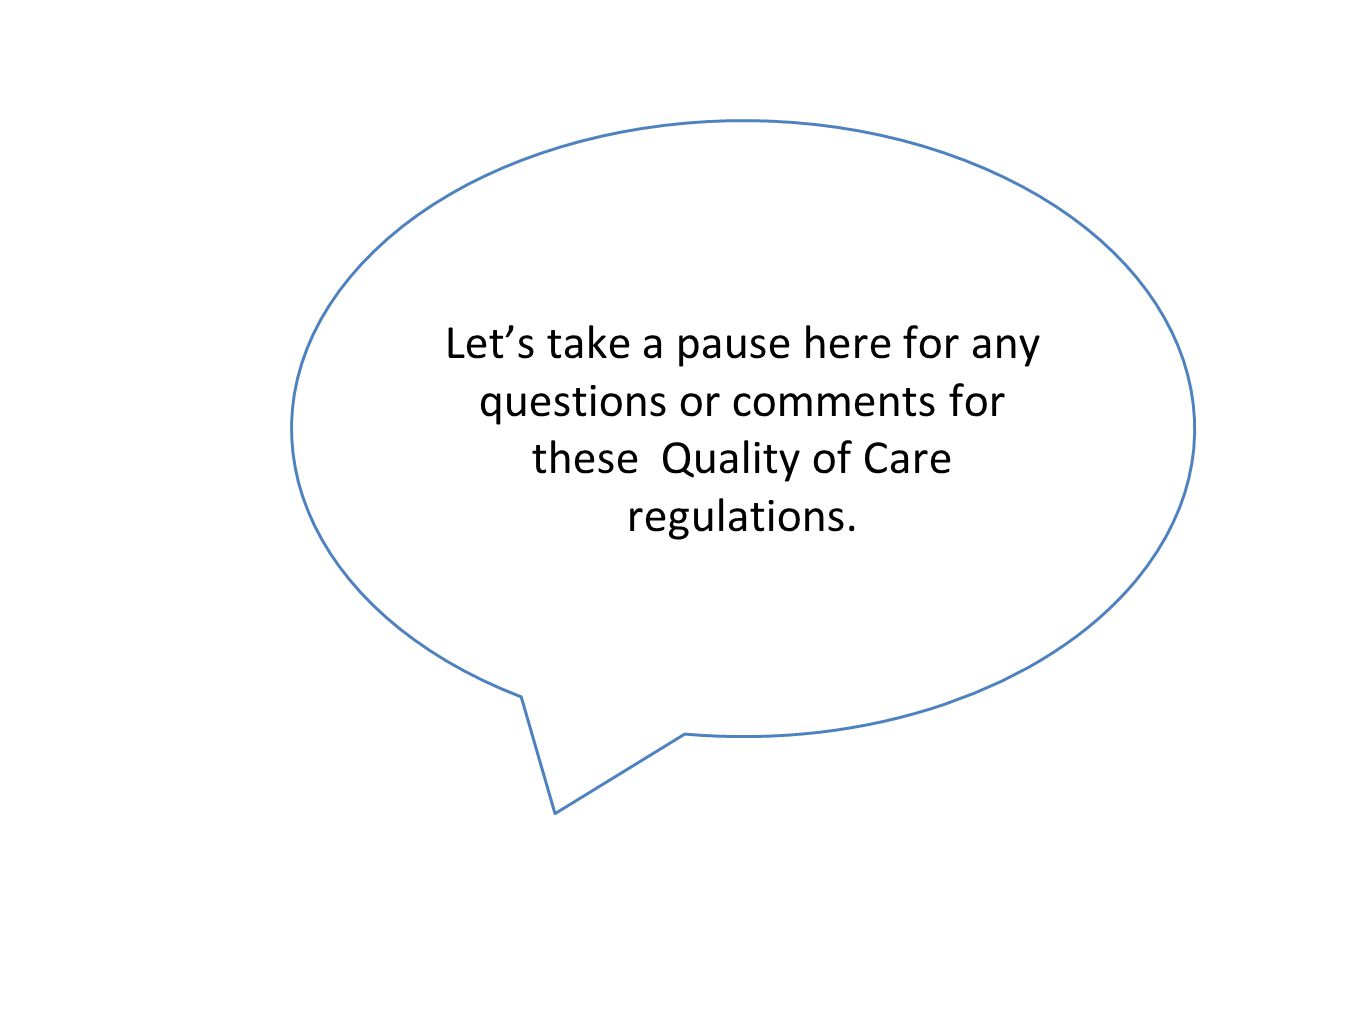 Let's take a pause here for any questions or comments for these Quality of Care regulations.